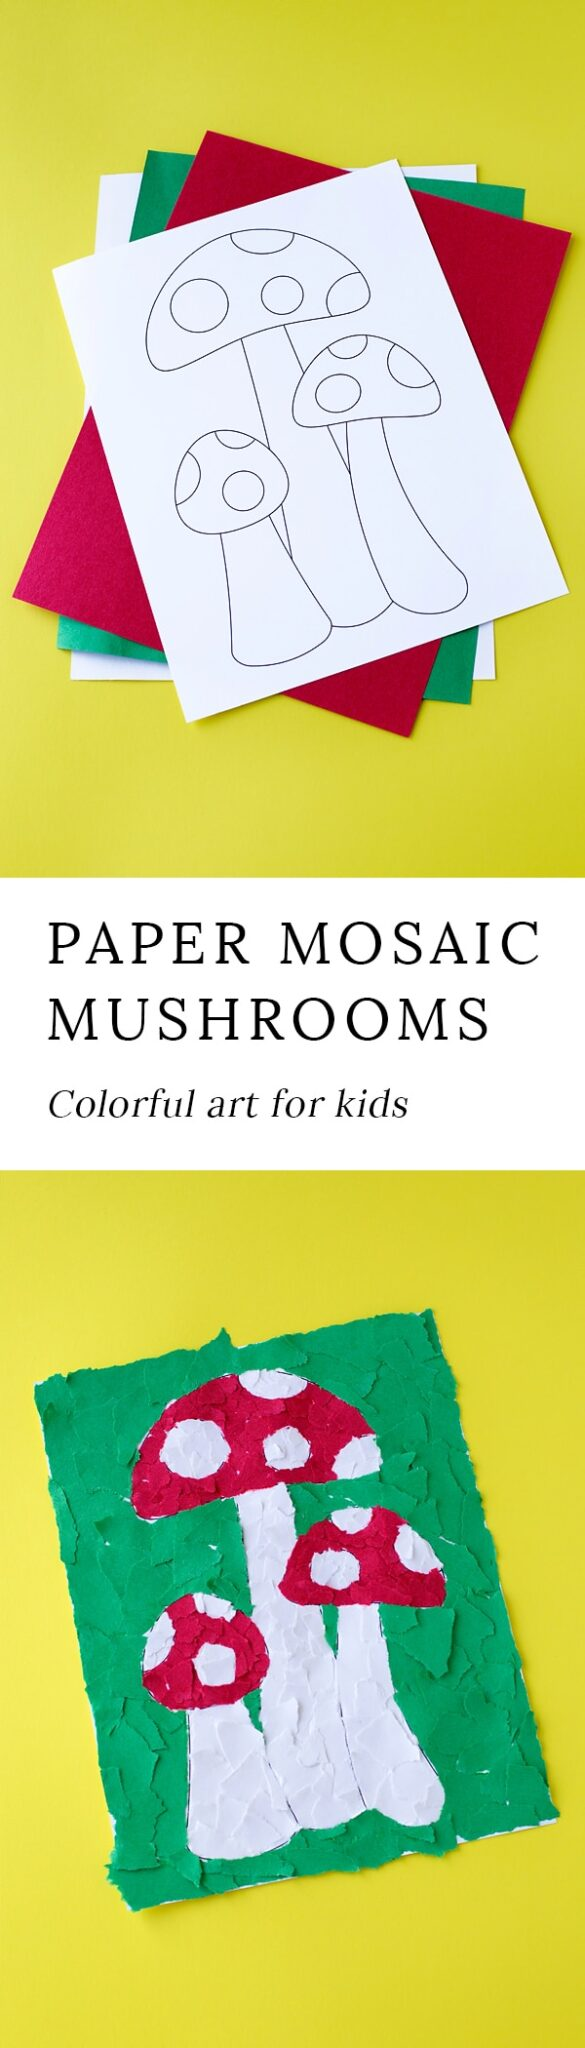 Tear fall colored construction paper into small pieces and glue - Kids Will Develop Fine Motor Skills And Have Fun While Using Our Printable Mushroom Template